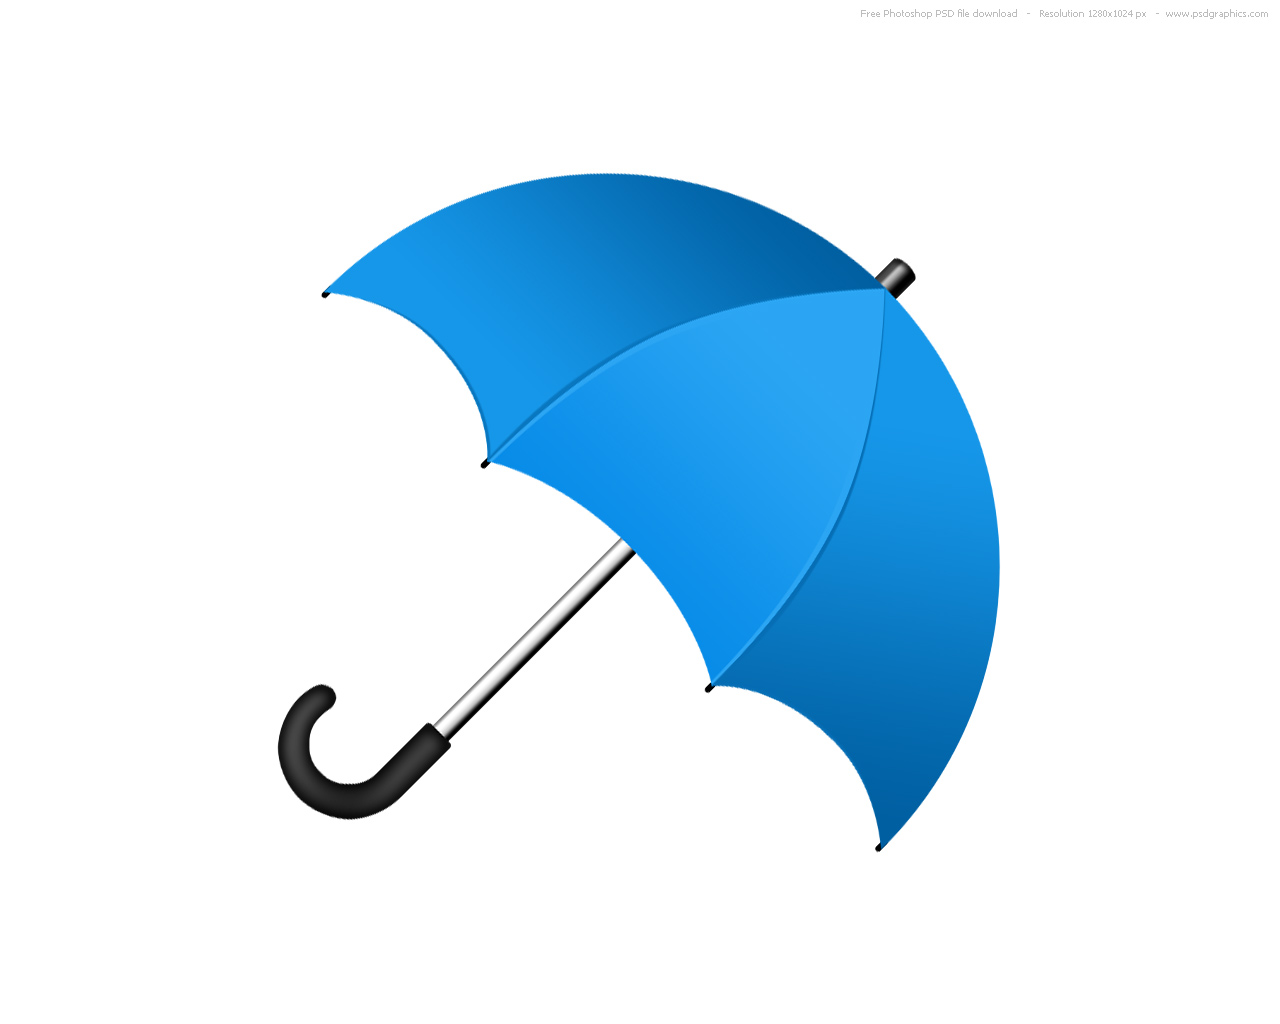 swiss-re_corpsolutions.jpg blue-umbrella-graphic.jpg